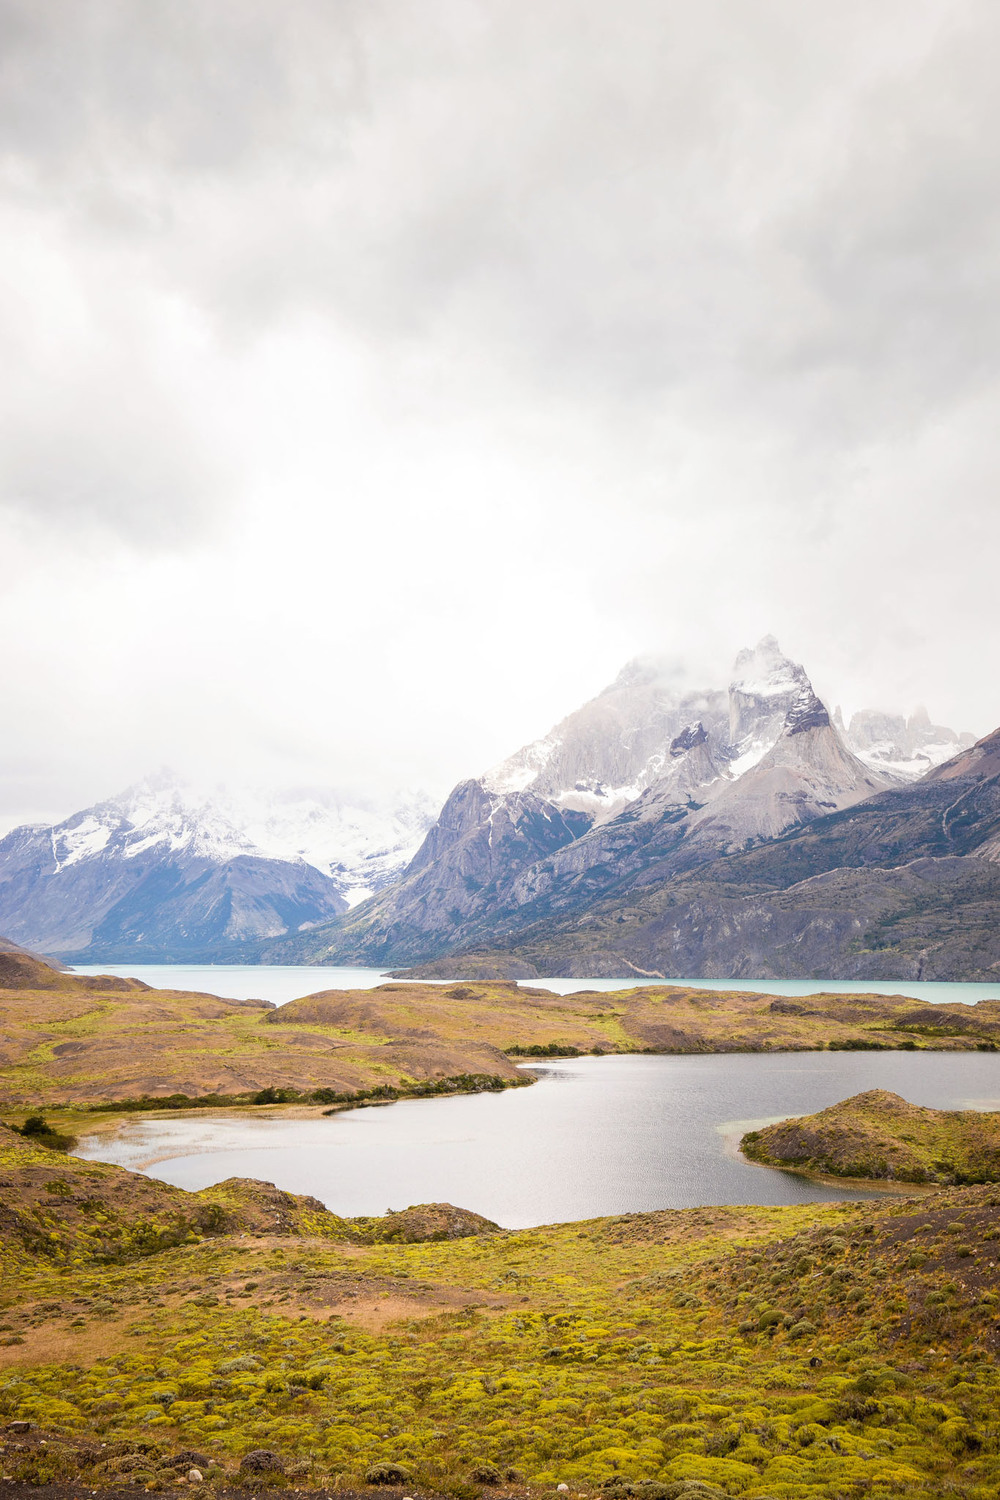 Wedding-Travellers-Overlanding-Destination-Wedding-Chile-Torres-del-Paine-lake-mountain